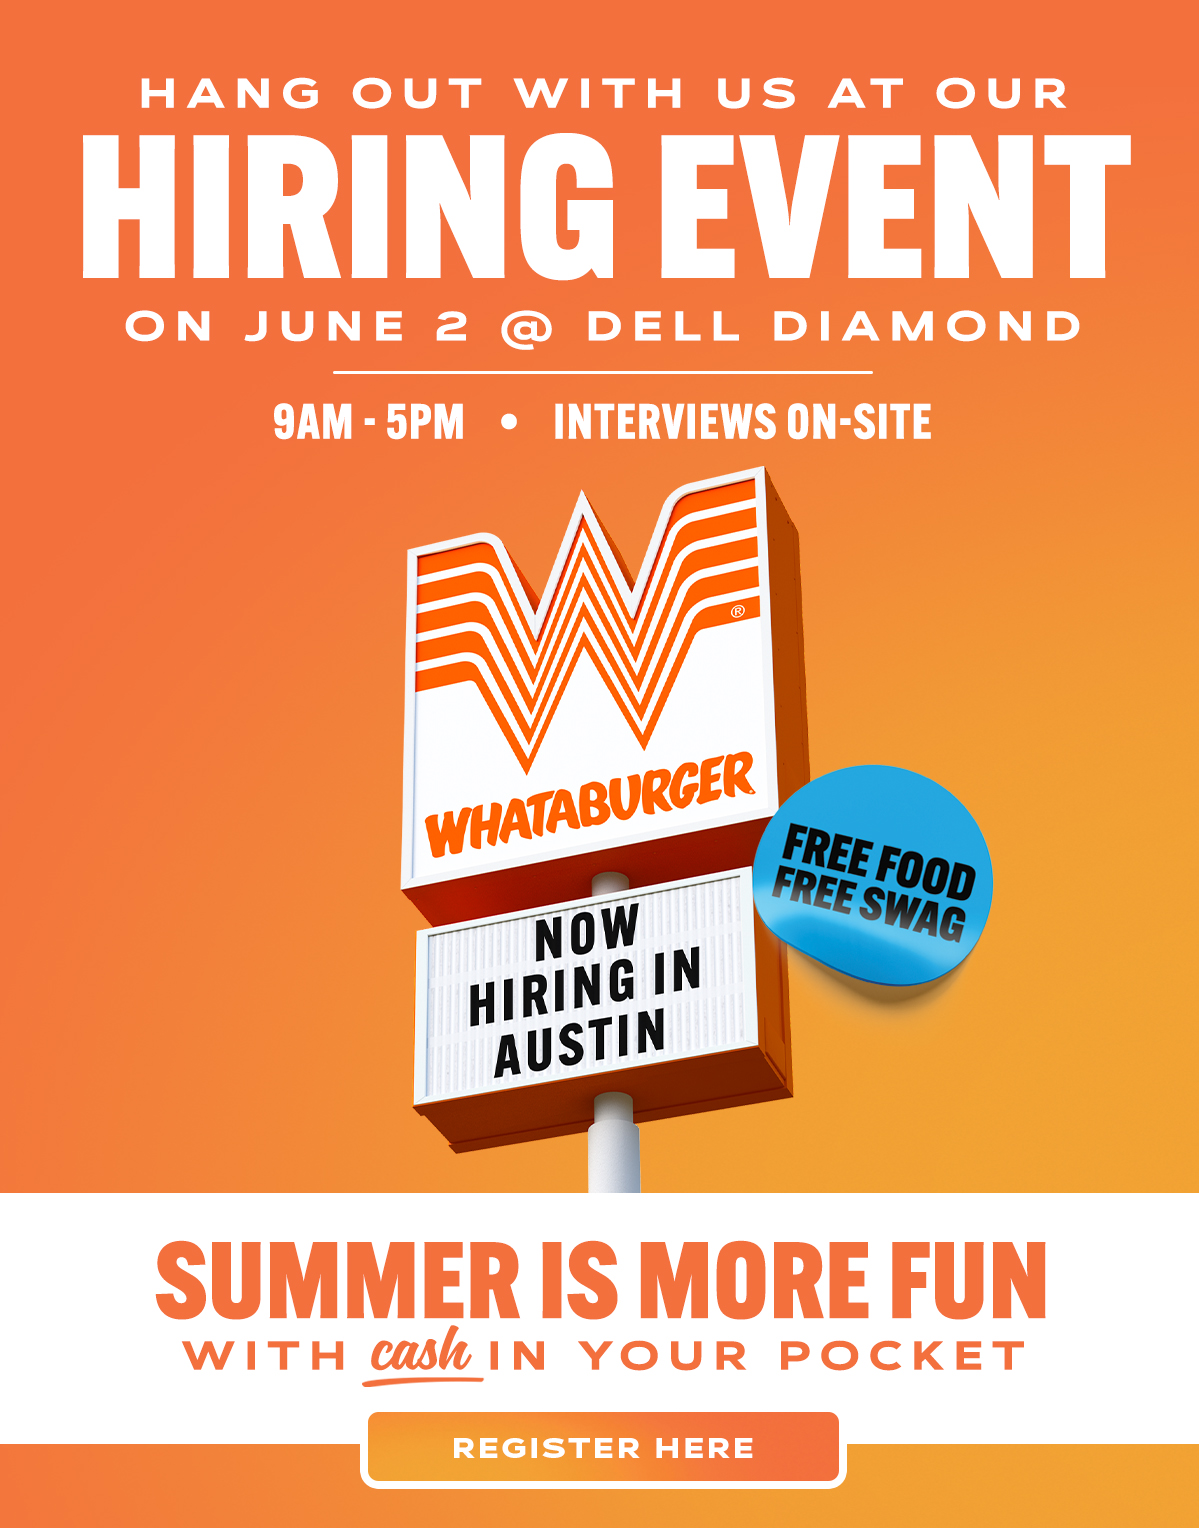 Whataburger is Hiring. Interviews on-site on June 2nd at the Dell Diamond from 9am - 5pm